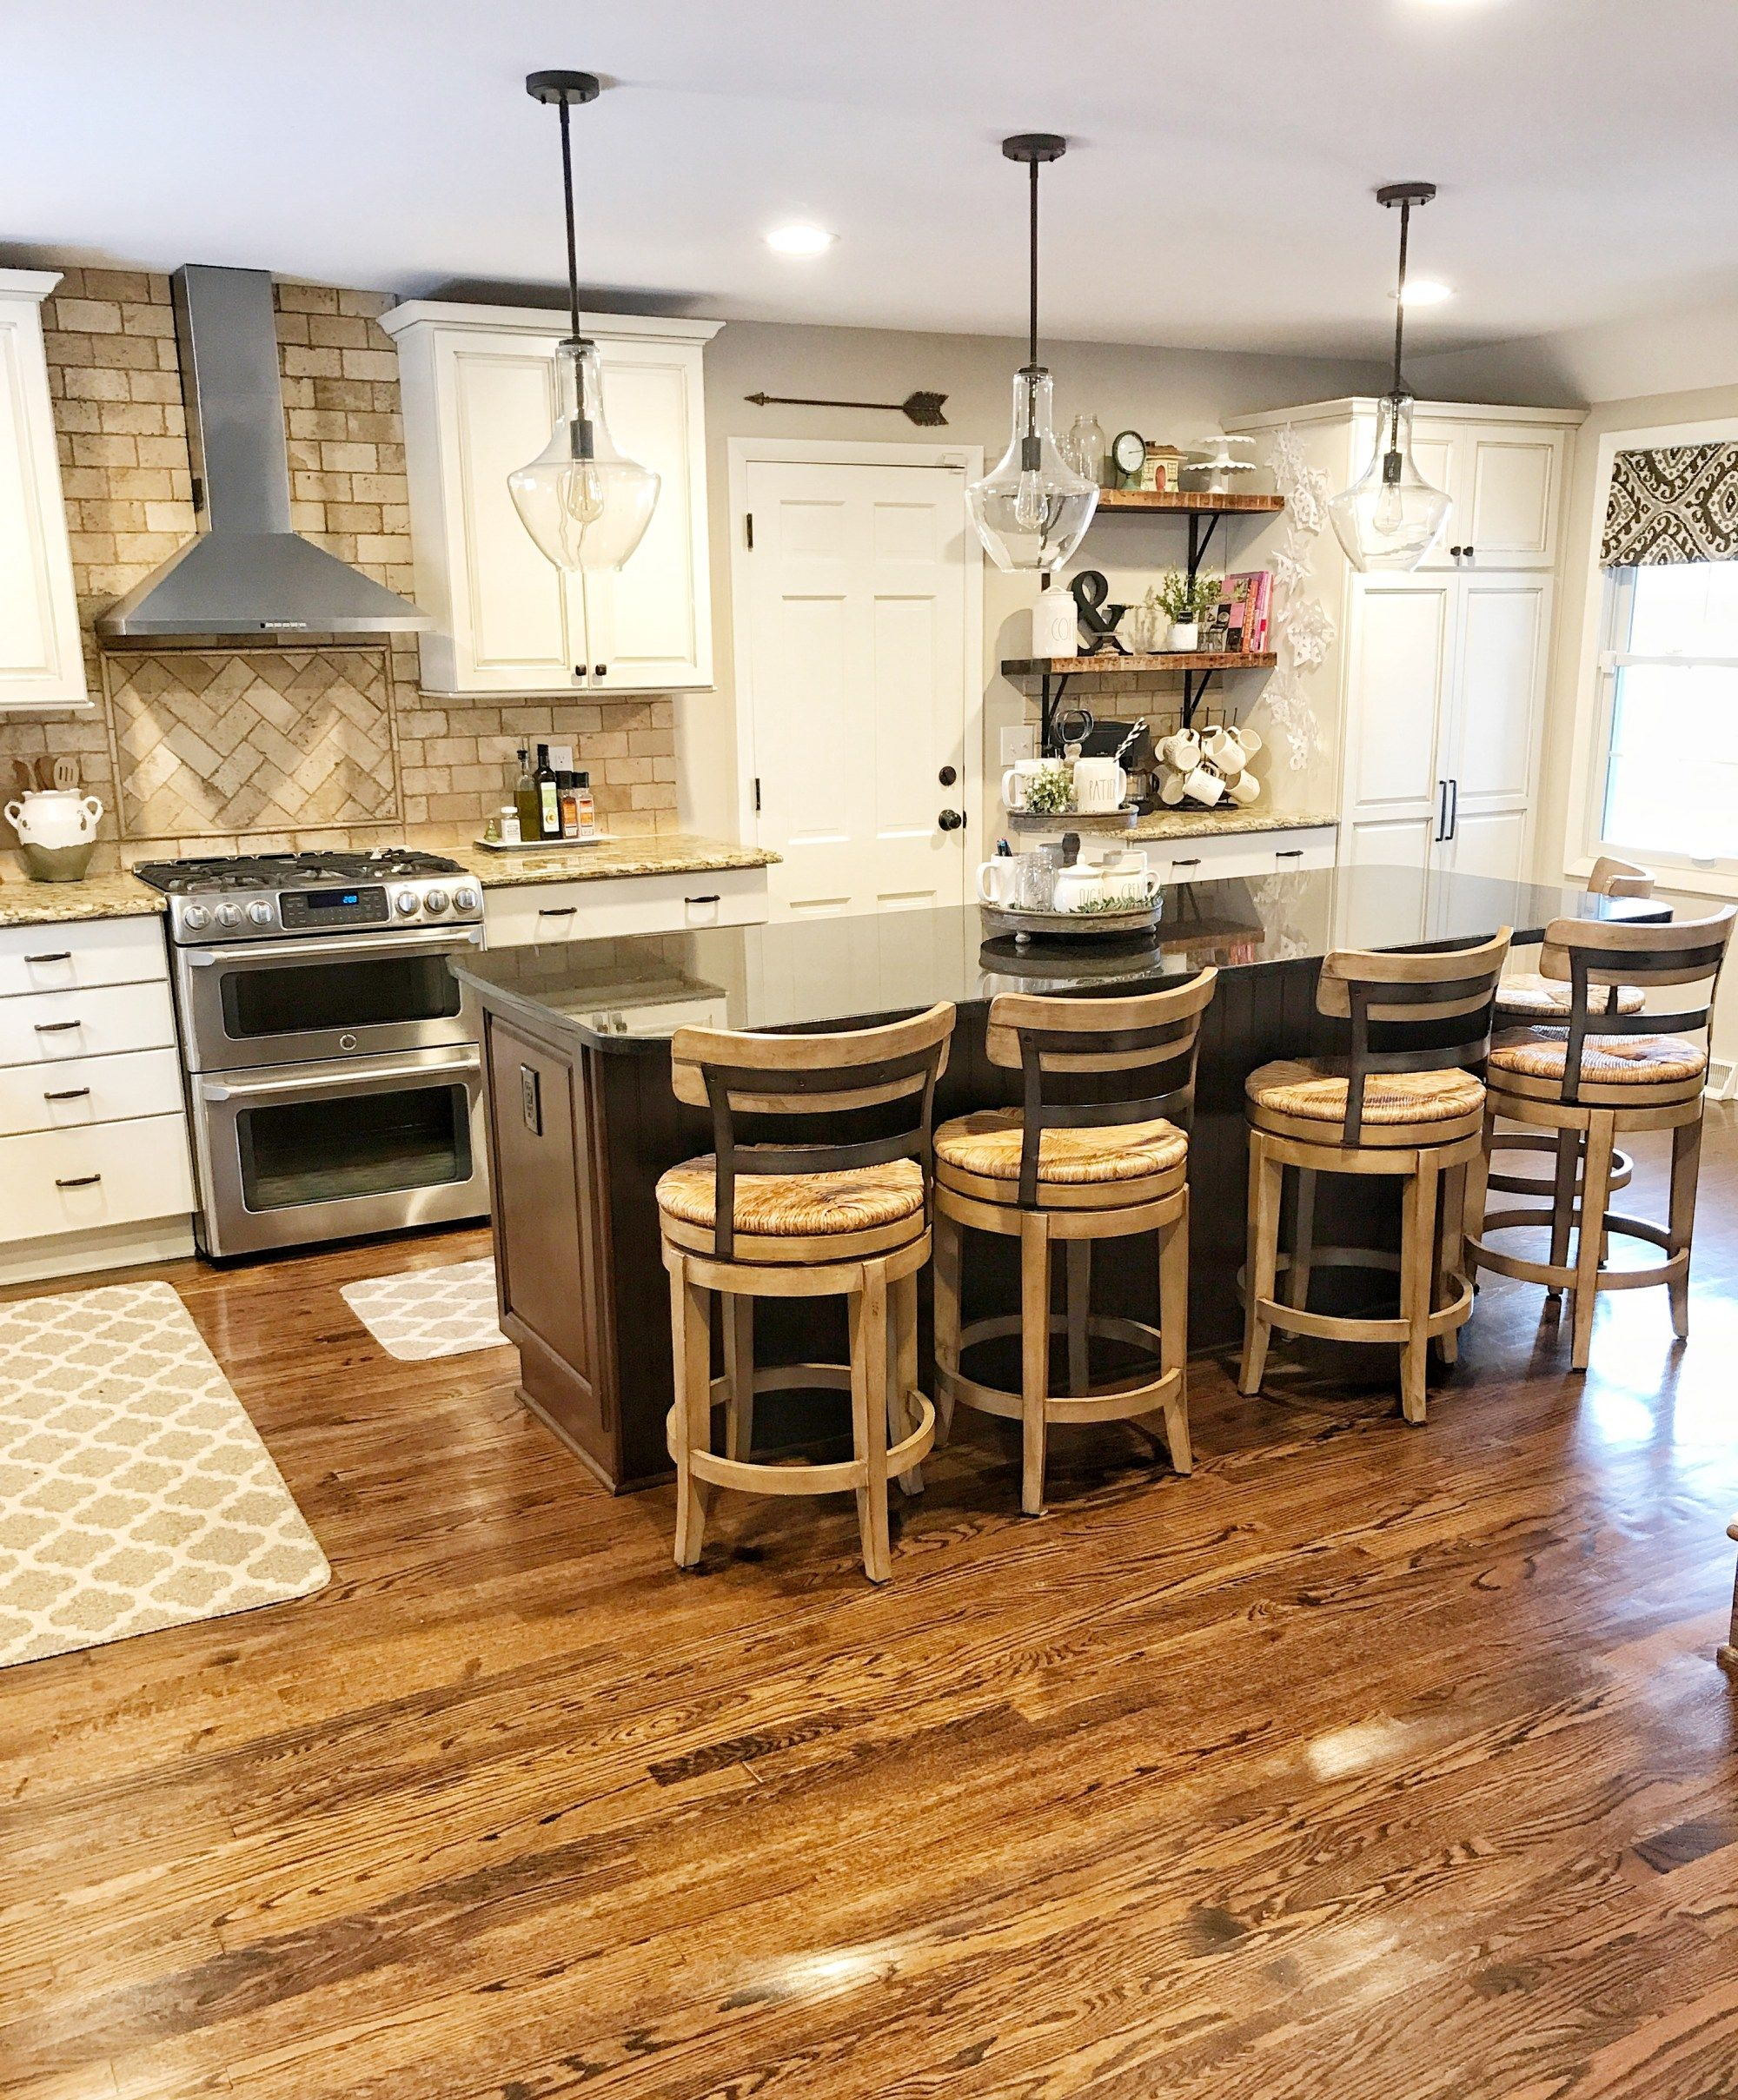 fixer upper kitchen remodel 7 farmhouse decor must haves budget kitchen remodel kitchen on kitchen remodel must haves id=49292